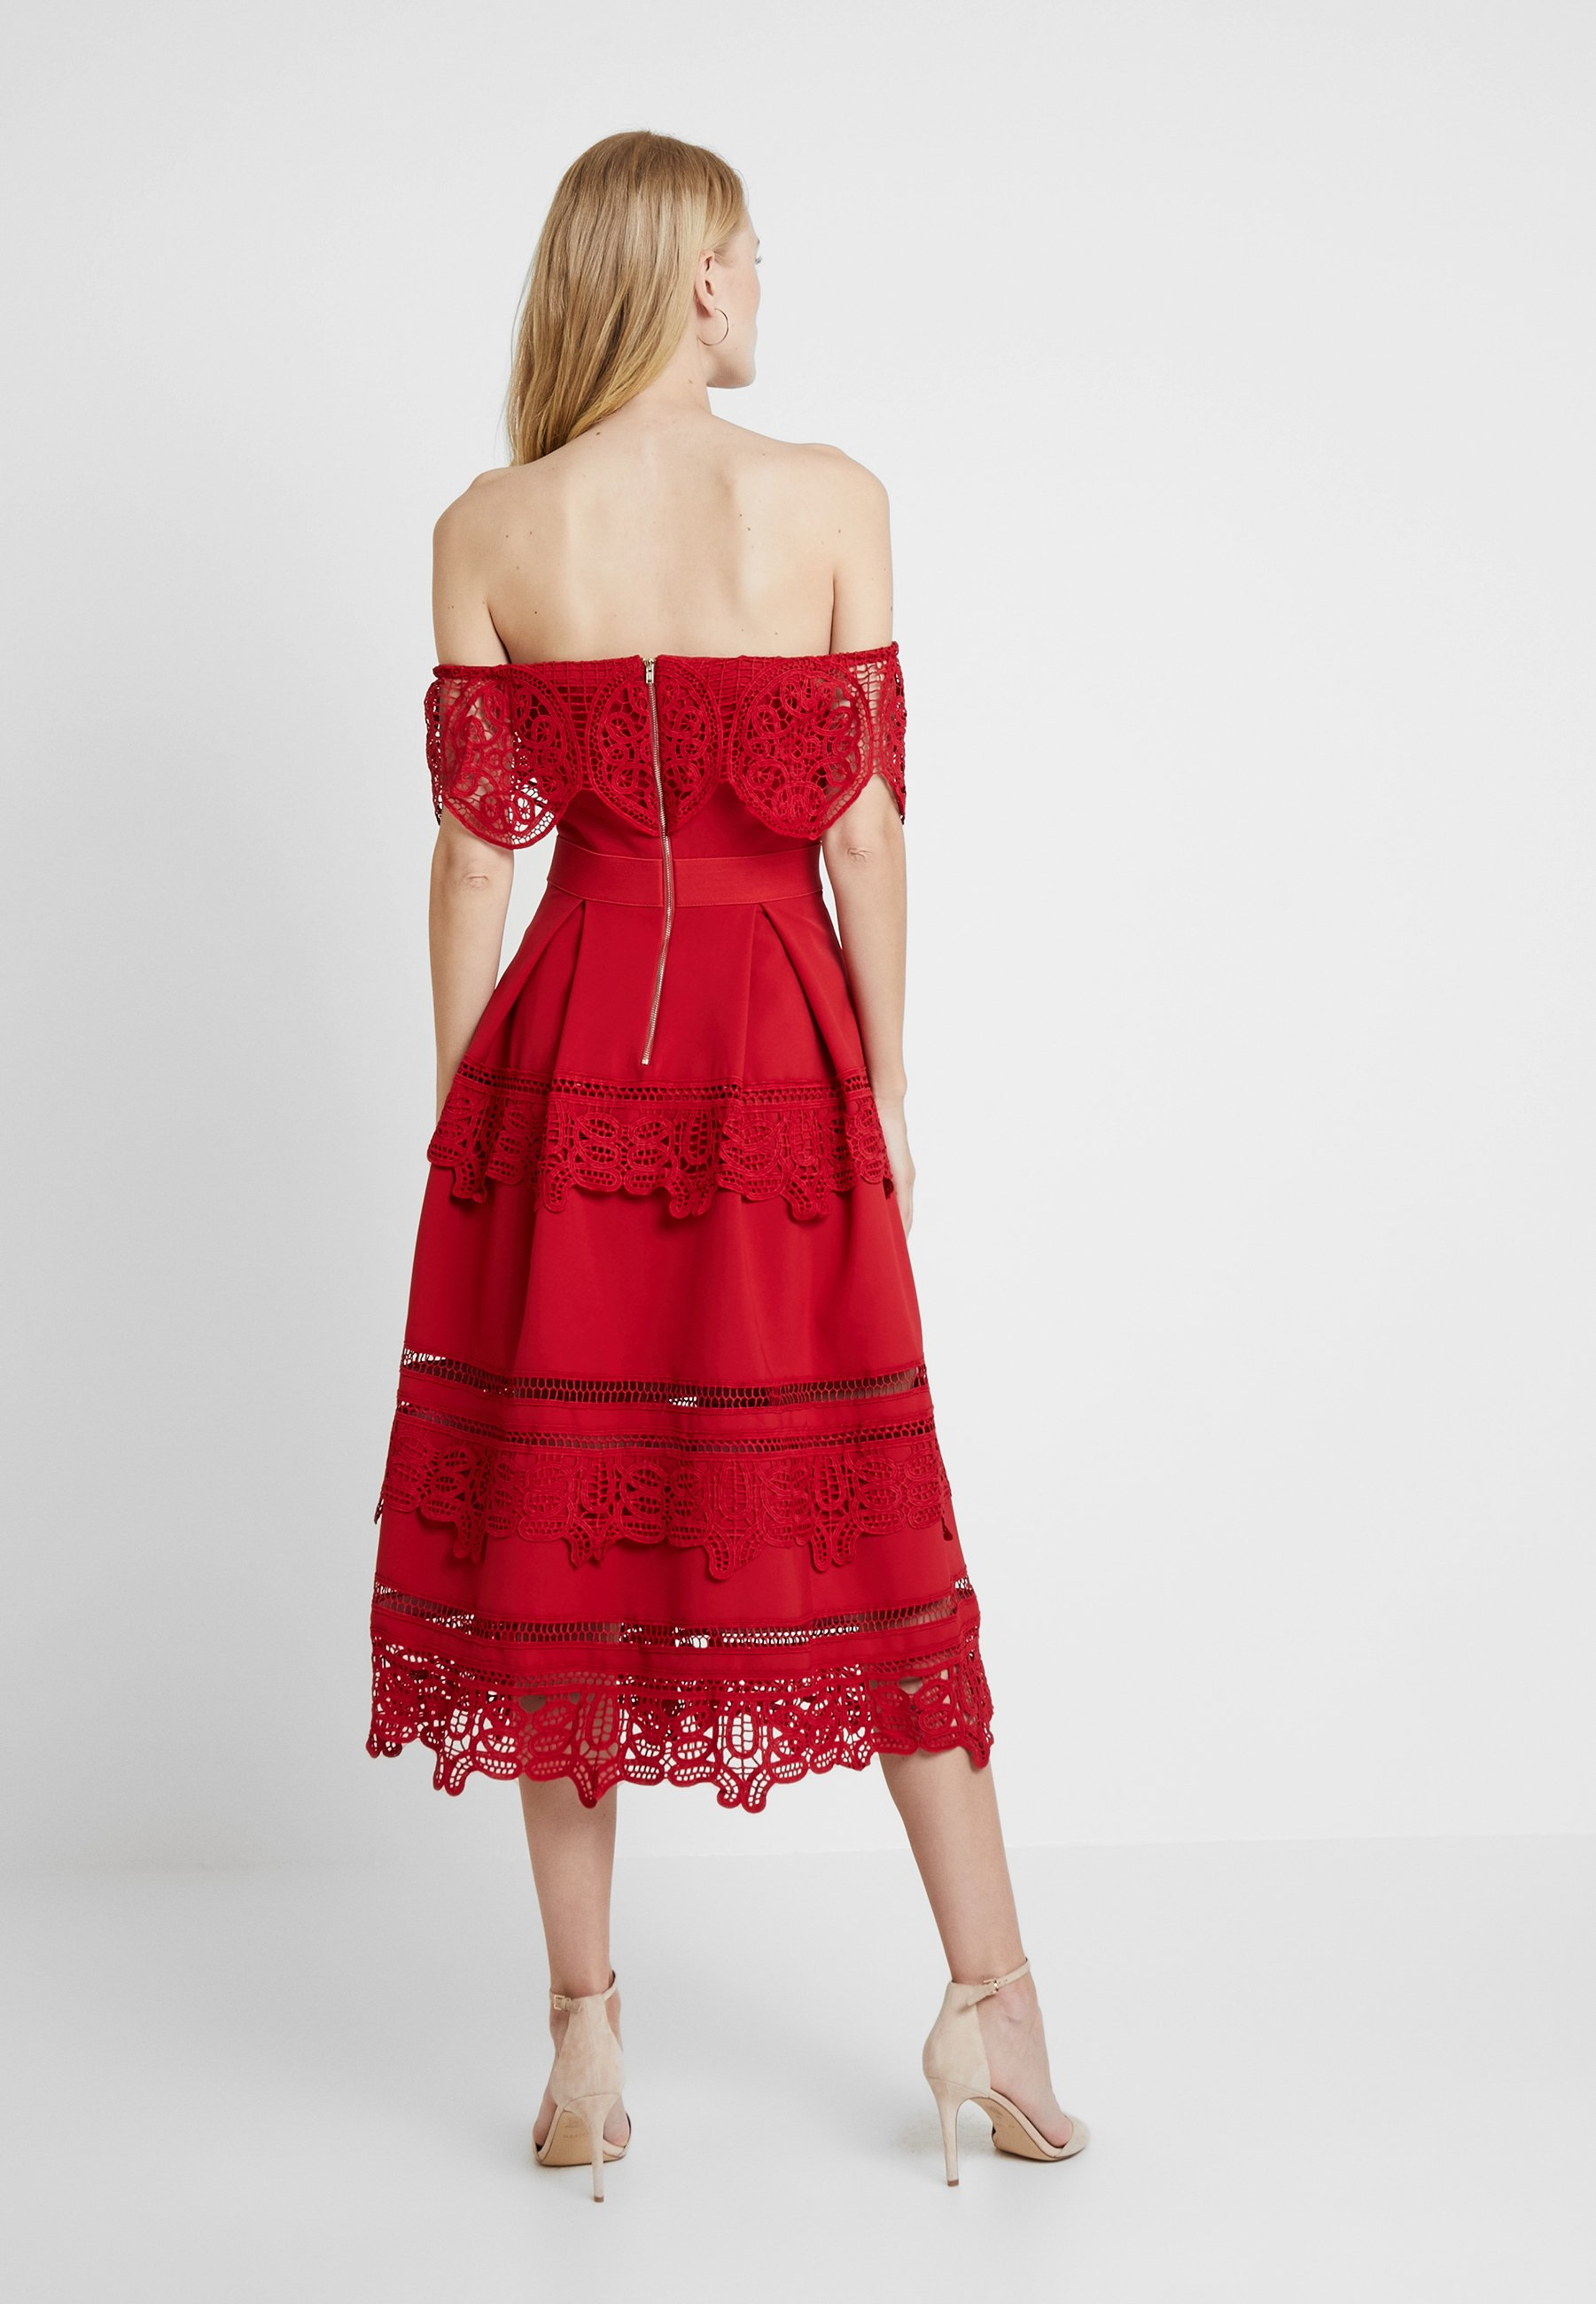 De Red Cocktail By Othelia Malina DressRobe LAjR35q4